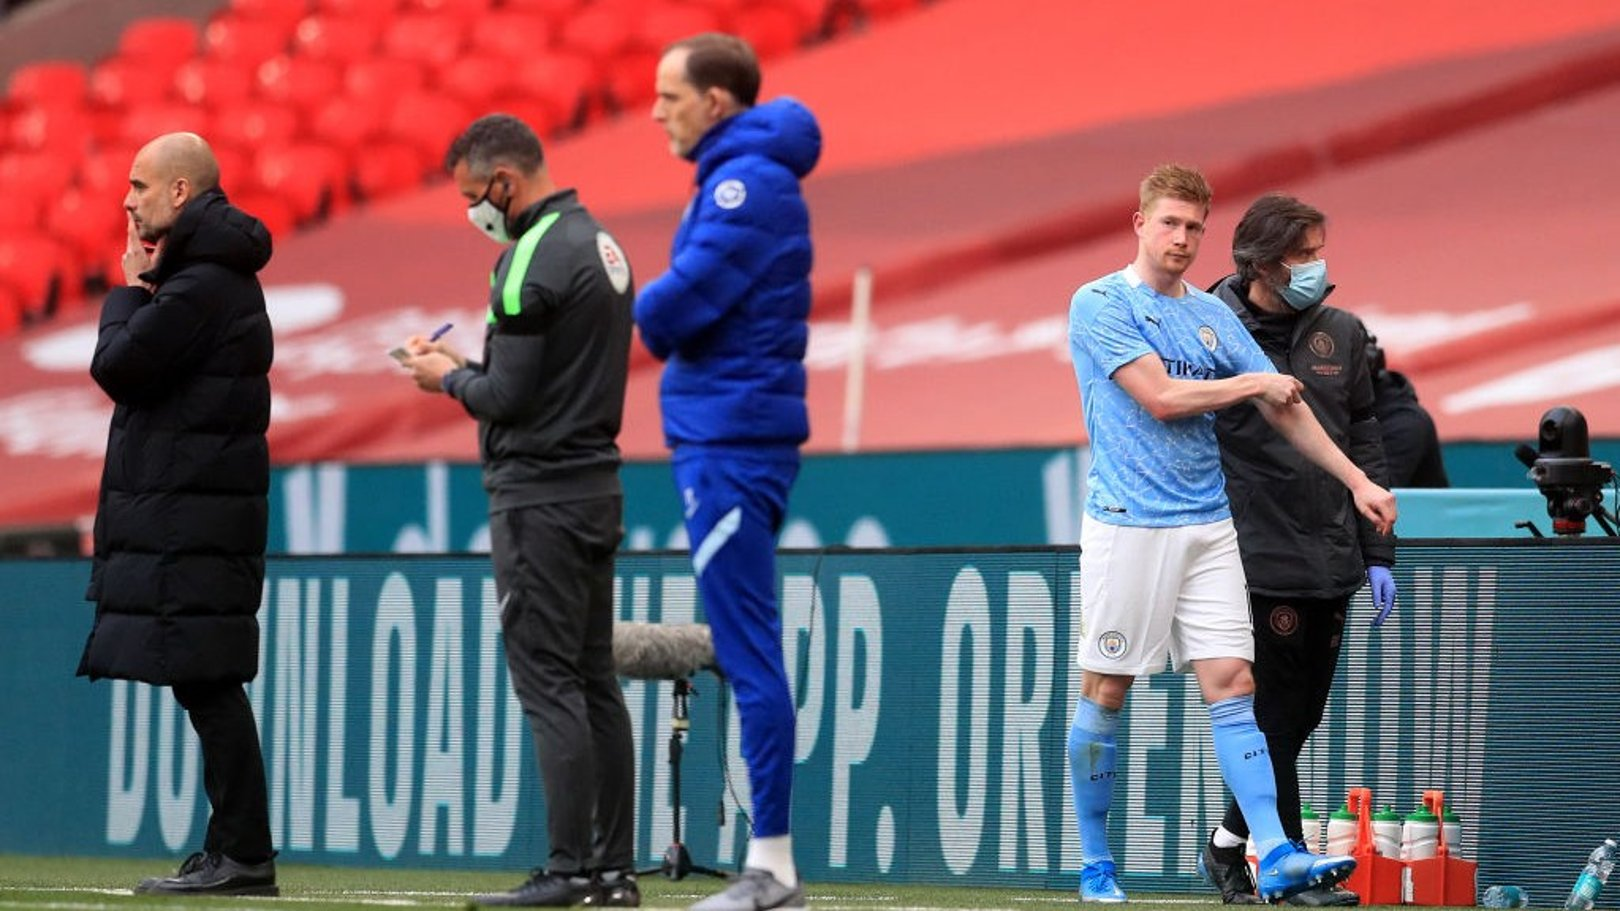 Injury update: Kevin De Bruyne